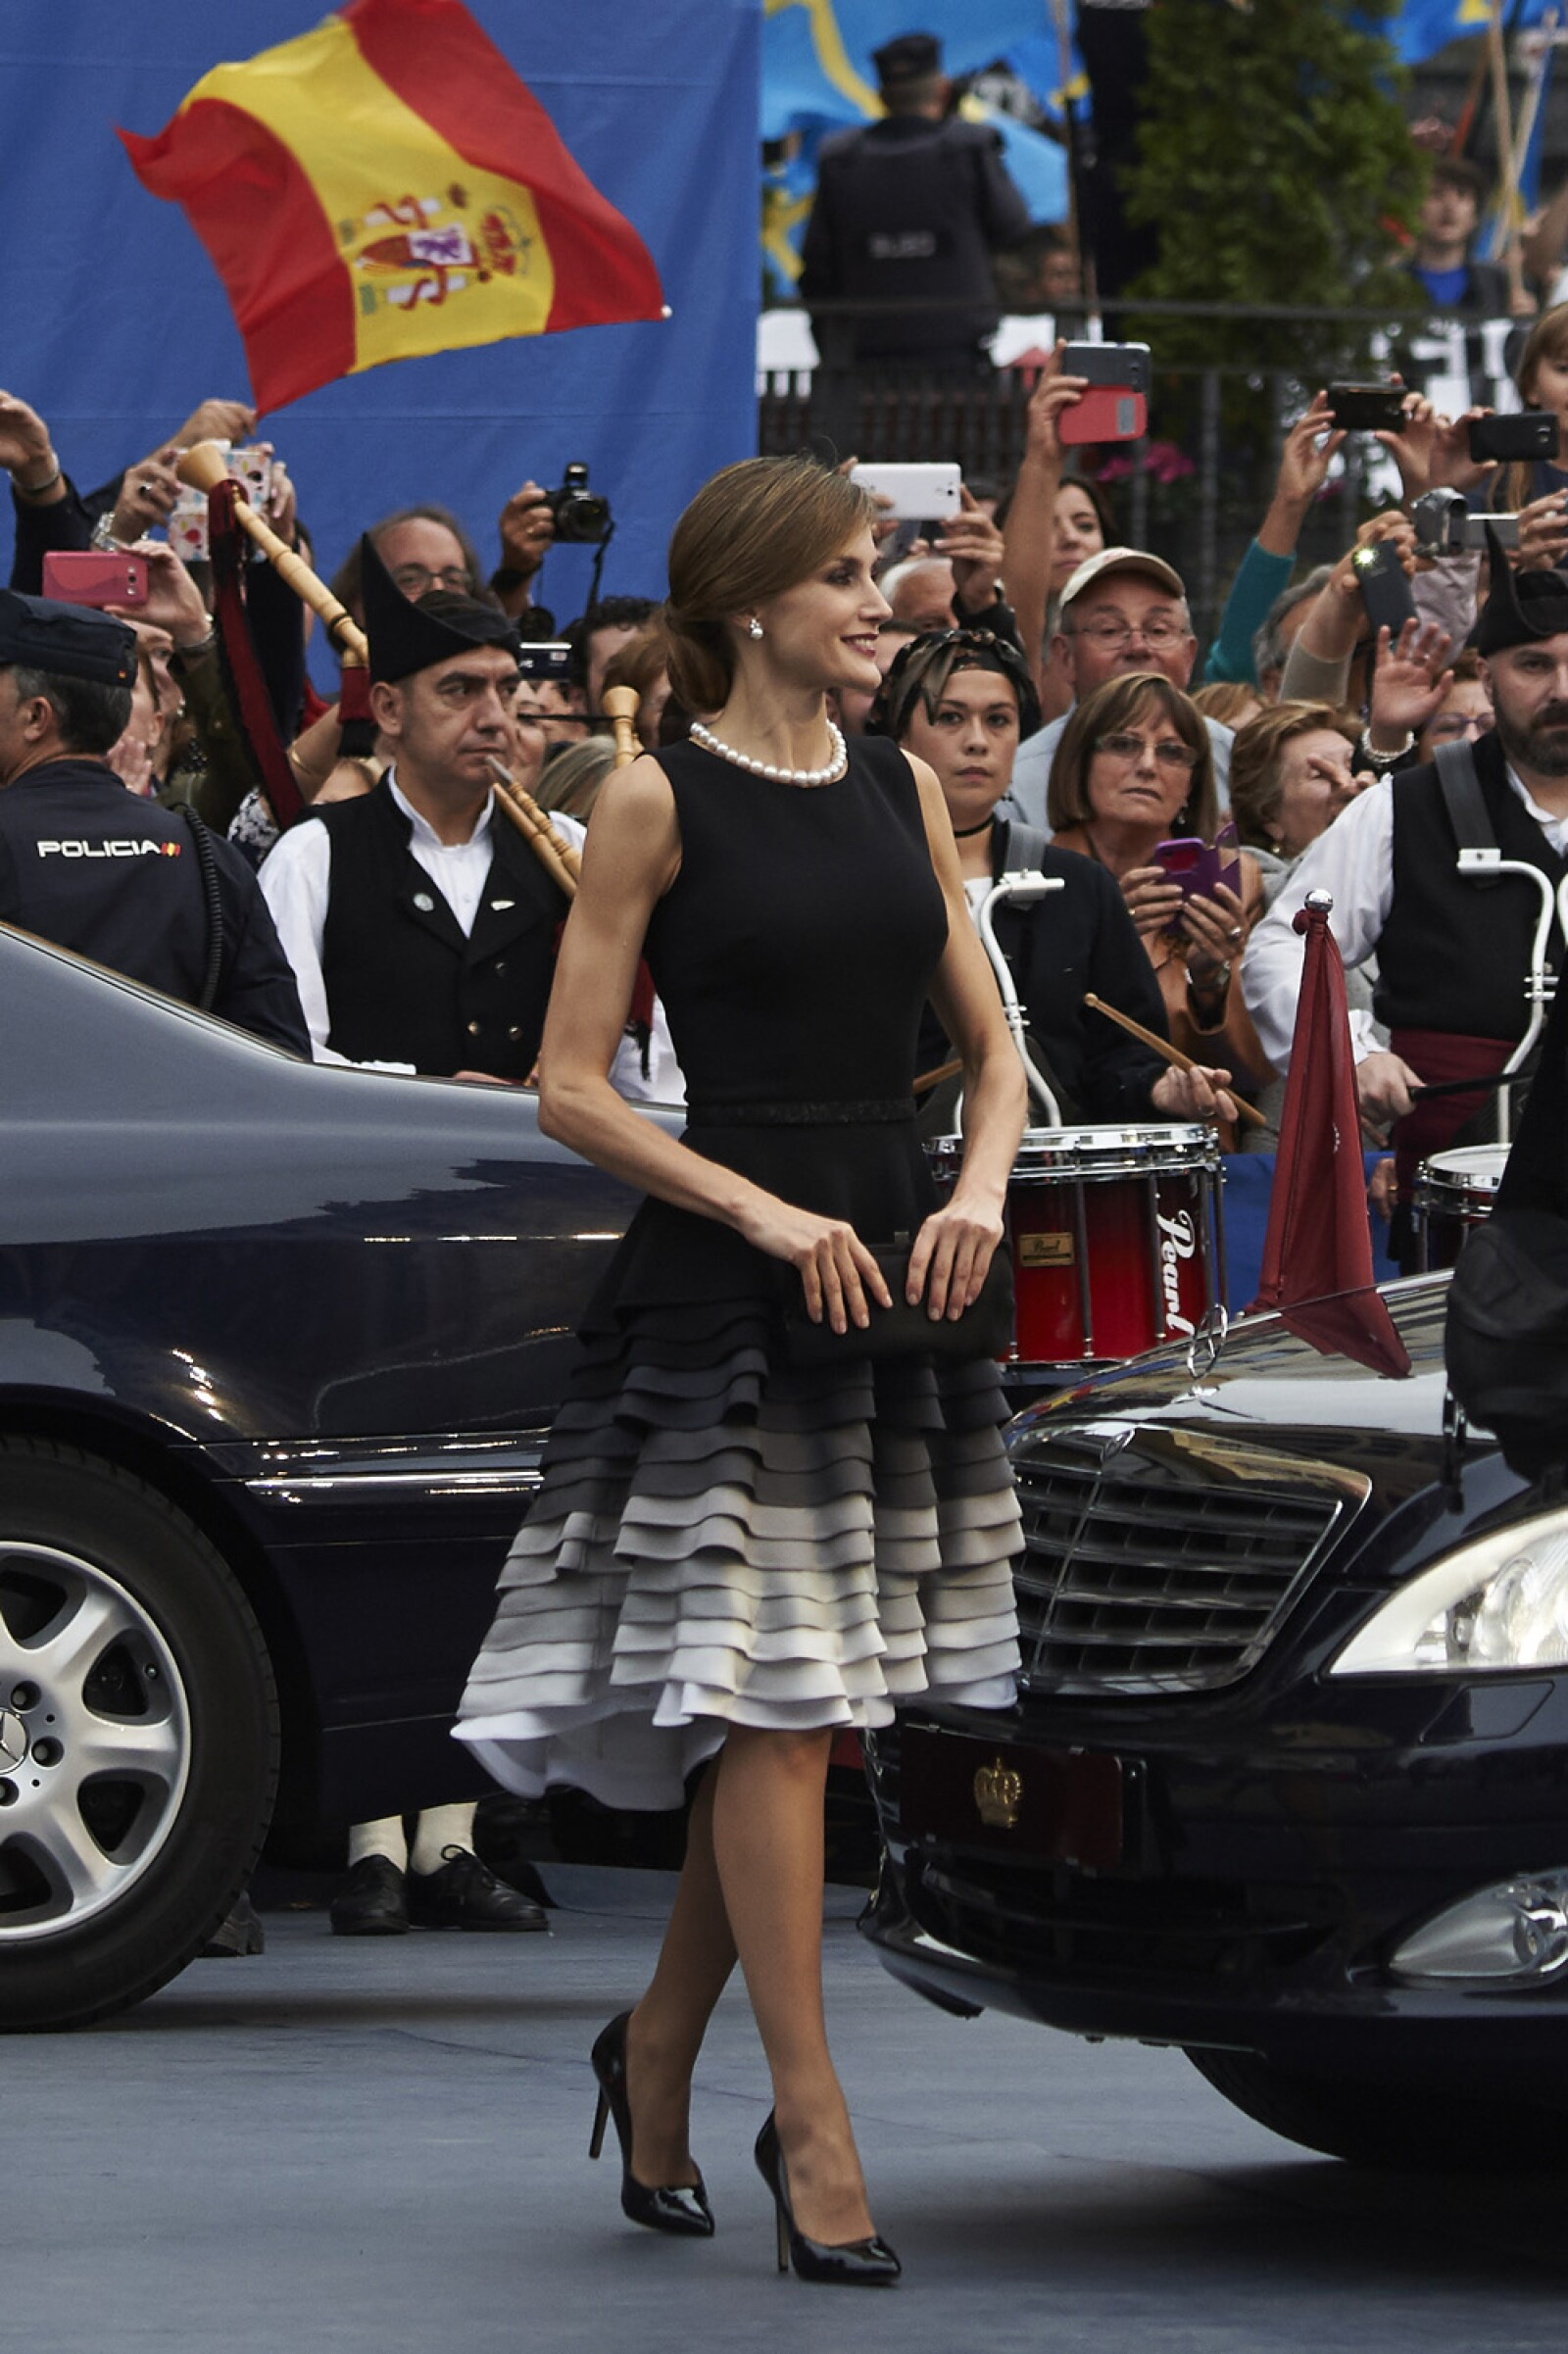 Princesa de Asturias Awards 2015 - Day 2